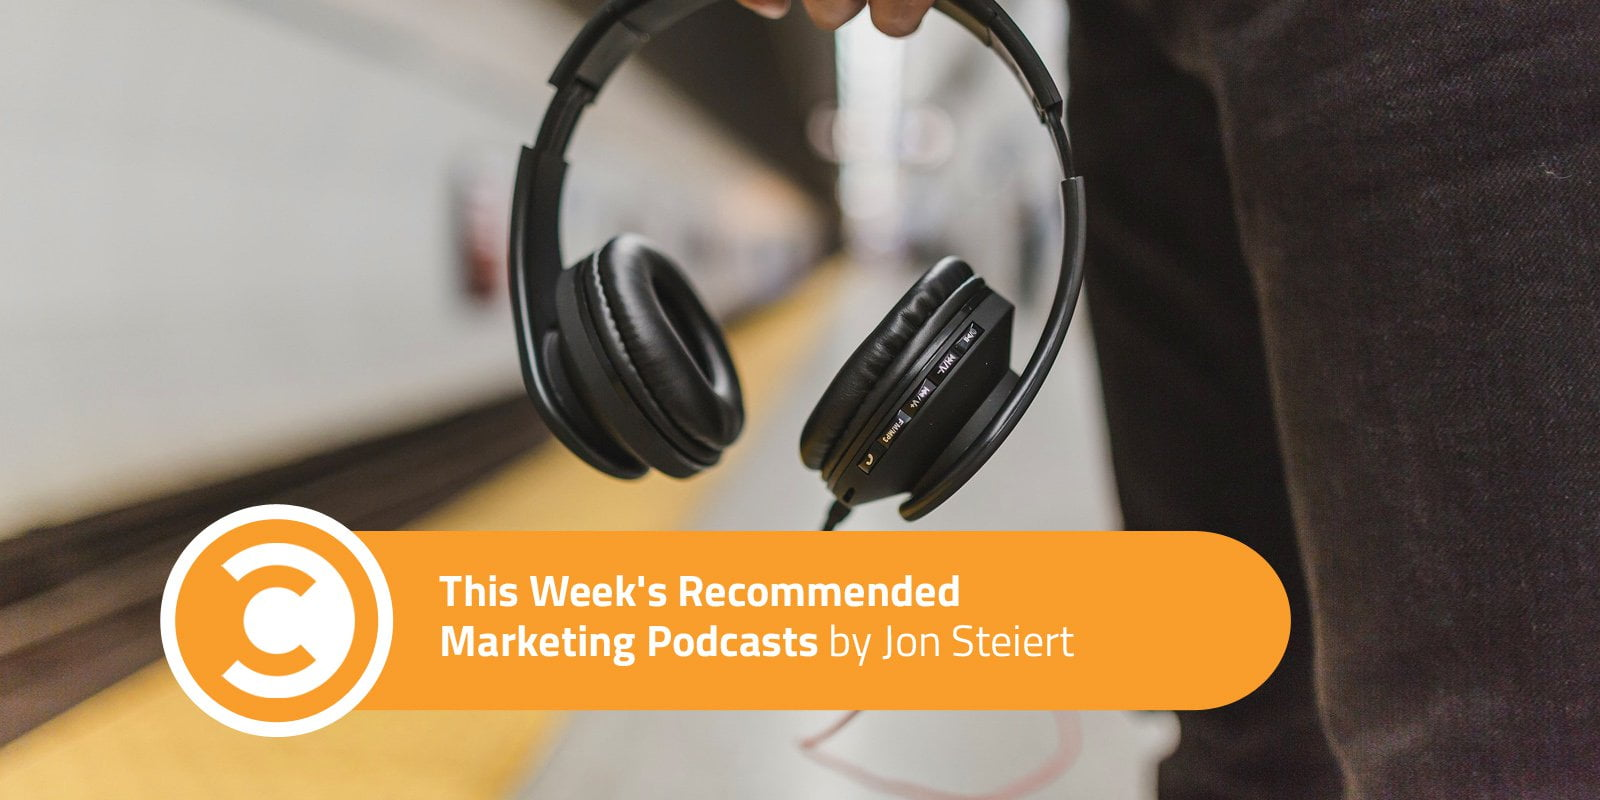 Worth A Listen: This Week's Recommended Marketing Podcasts